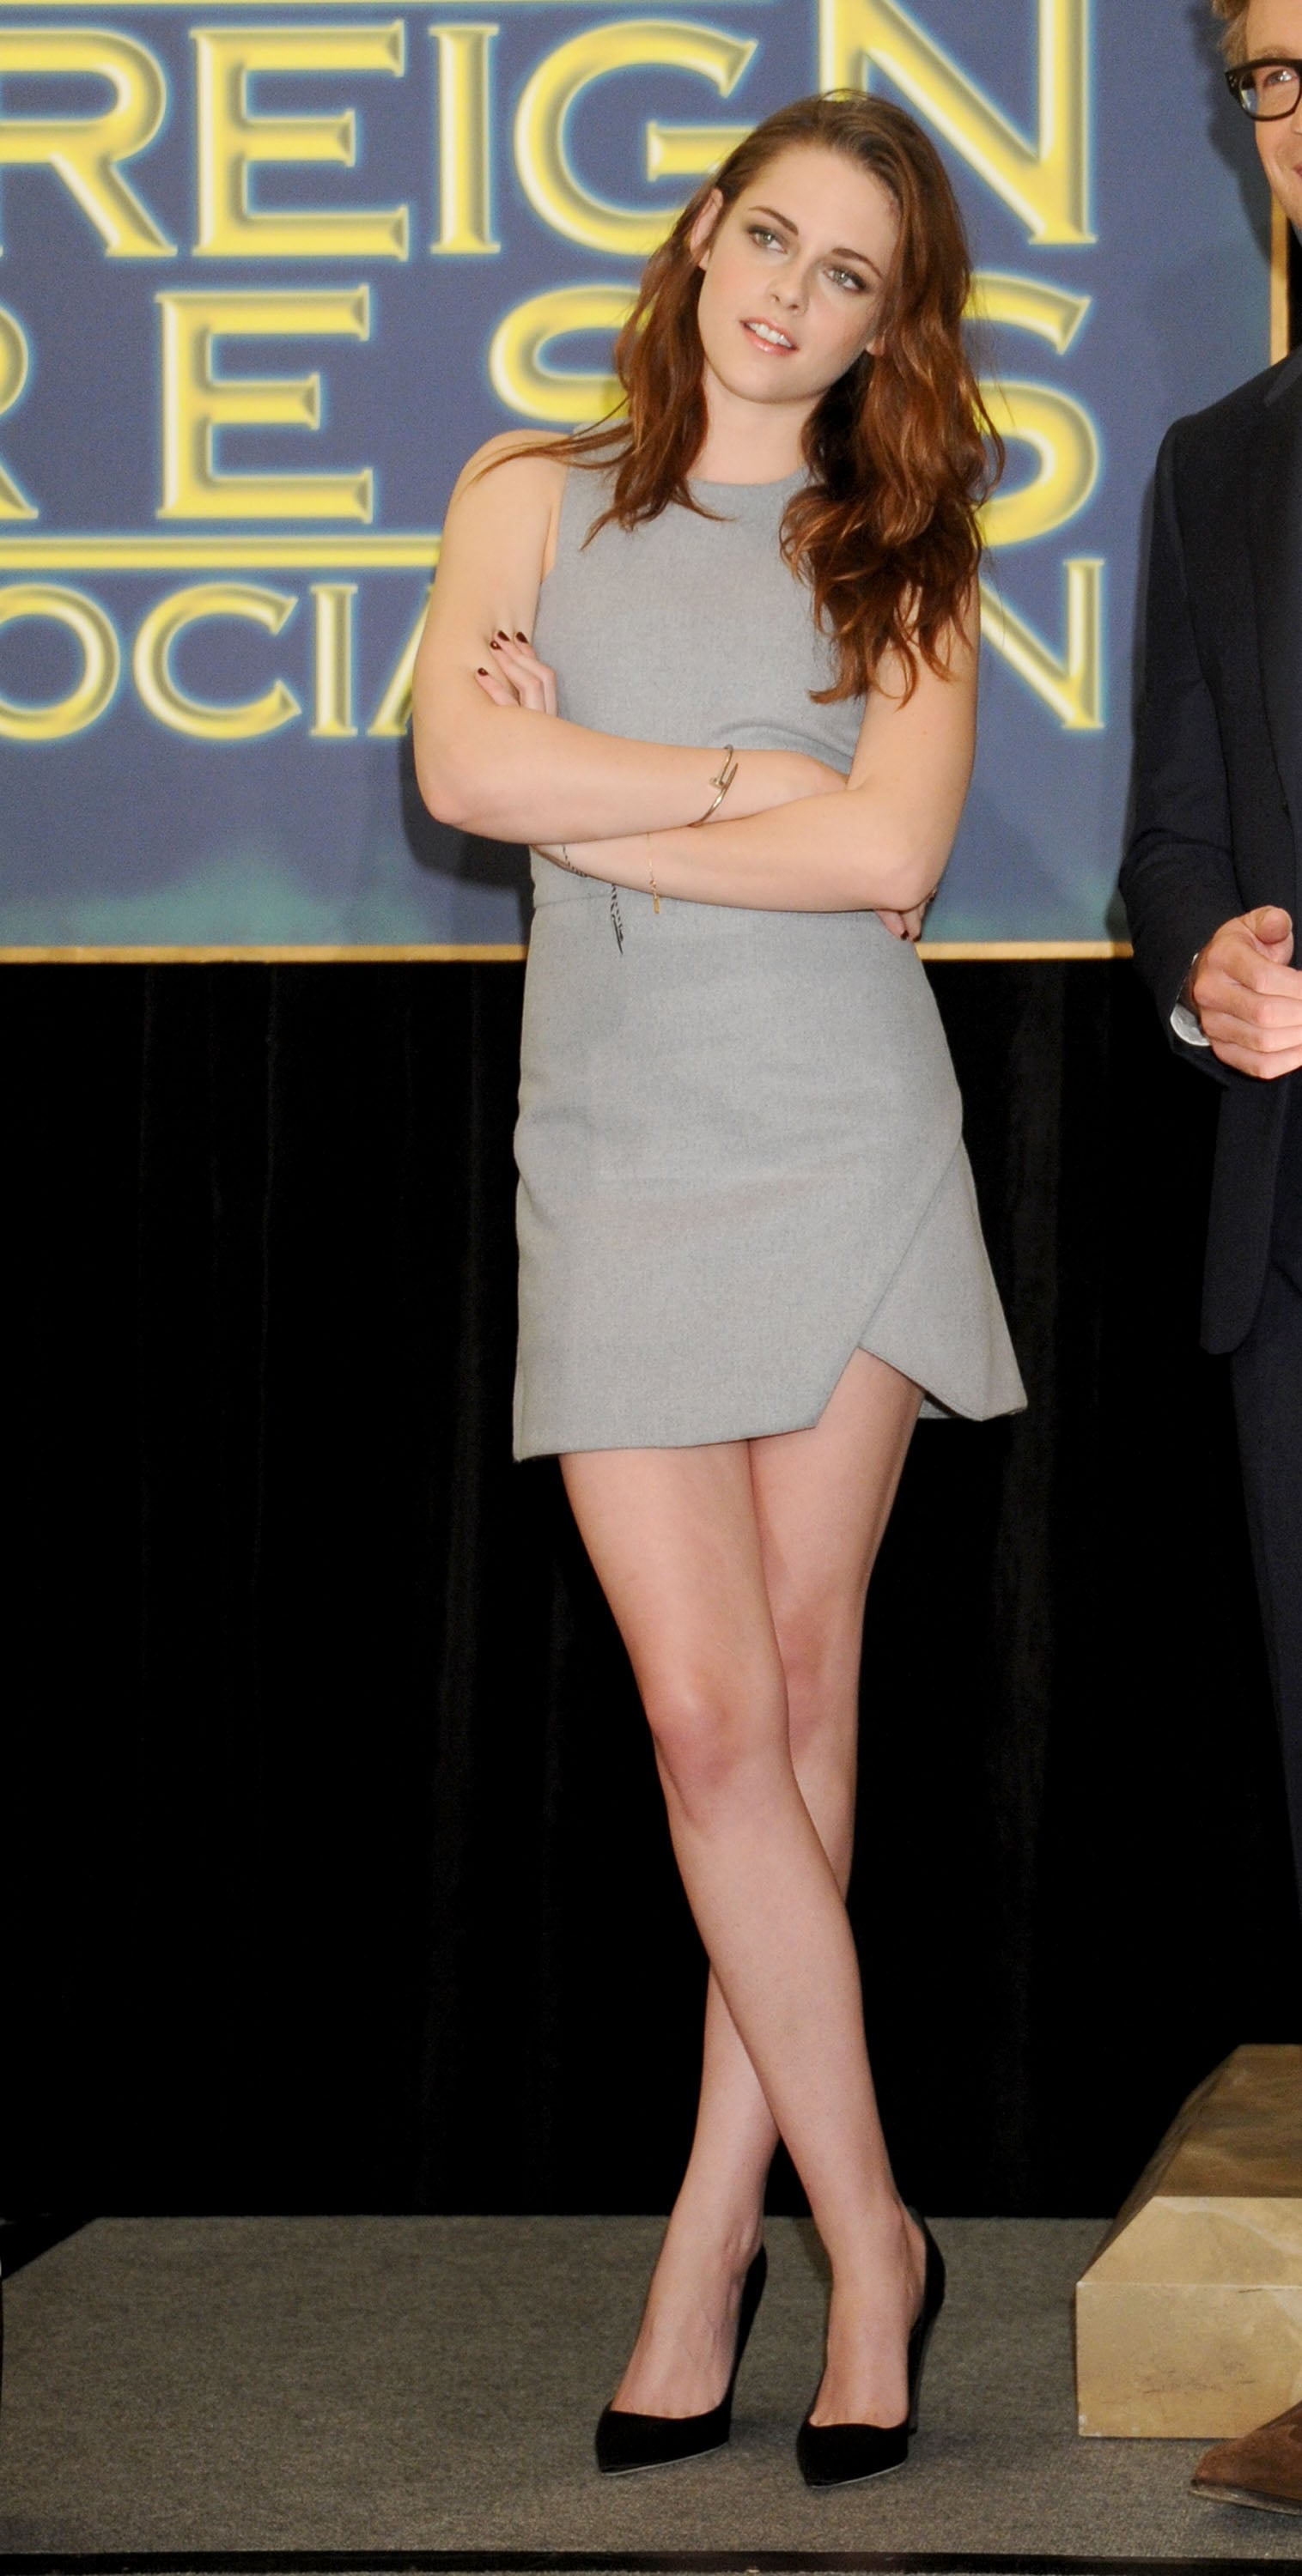 Stewart donned a simple gray shift dress during a 2012 press event in Beverly Hills.